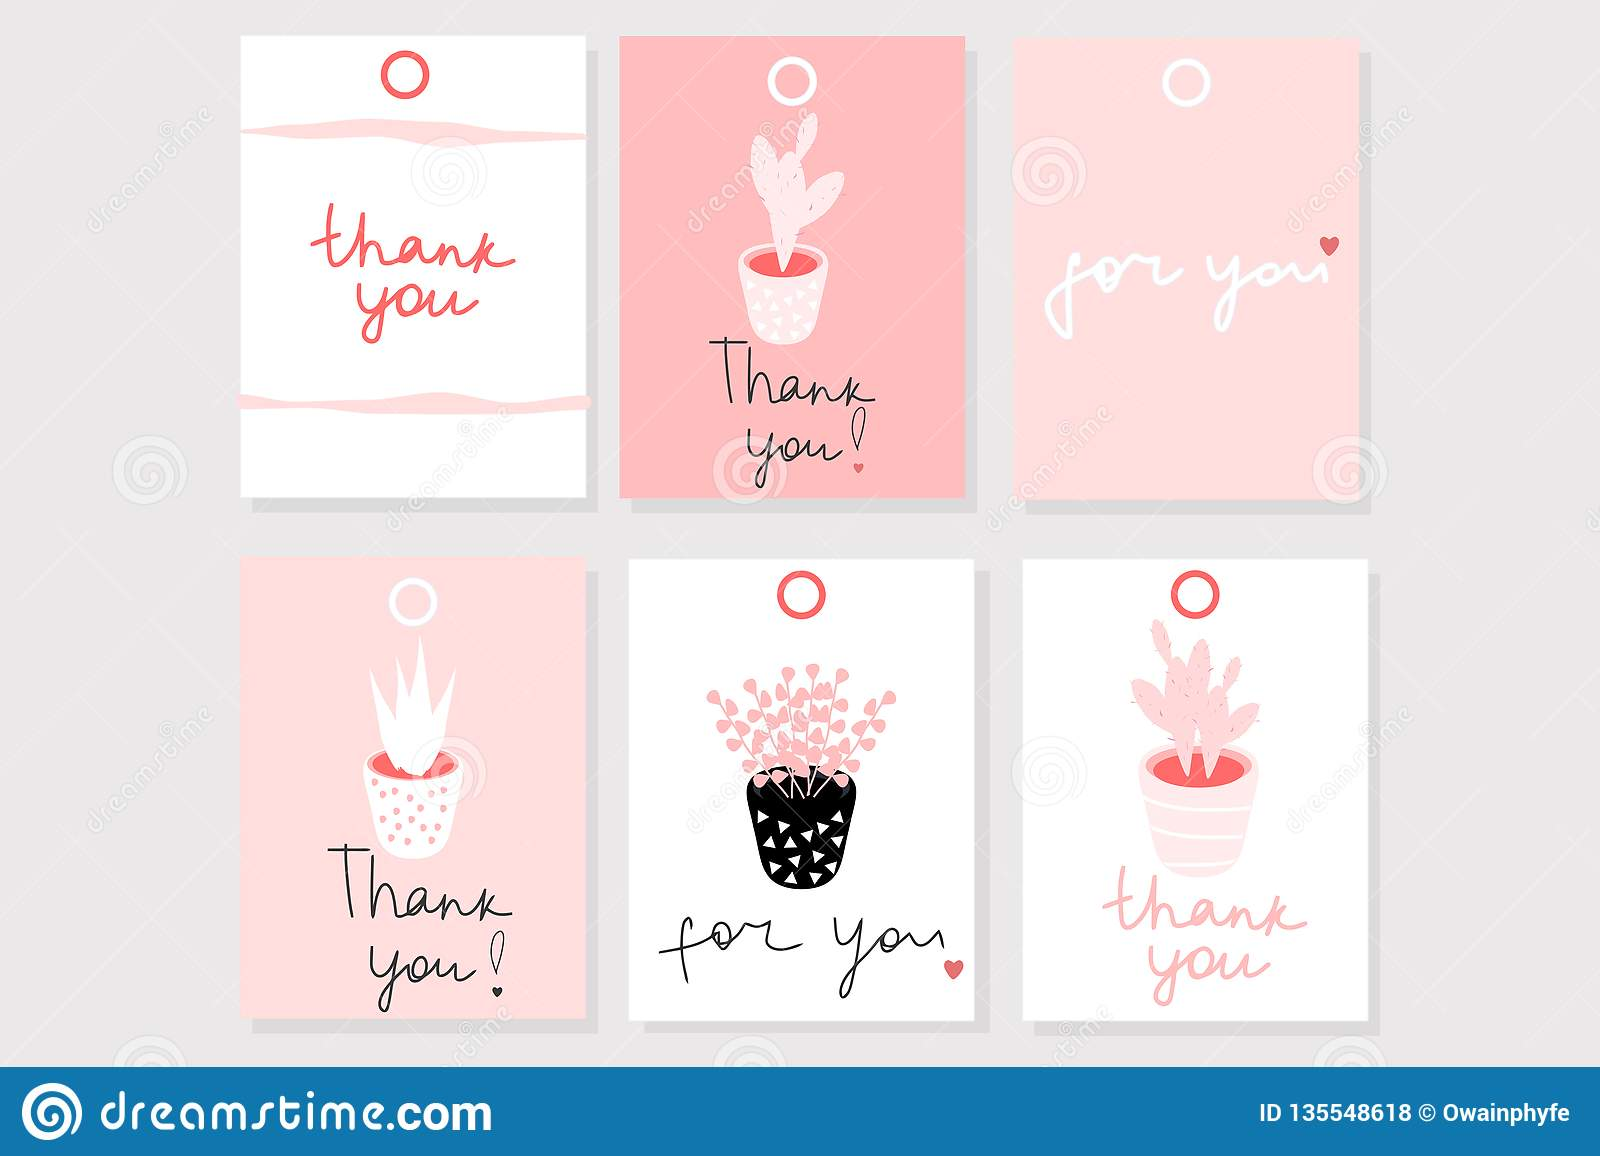 Set of 6 vector gift cards with words ``Thank you`` and ``For you`` in cute romantic girly style